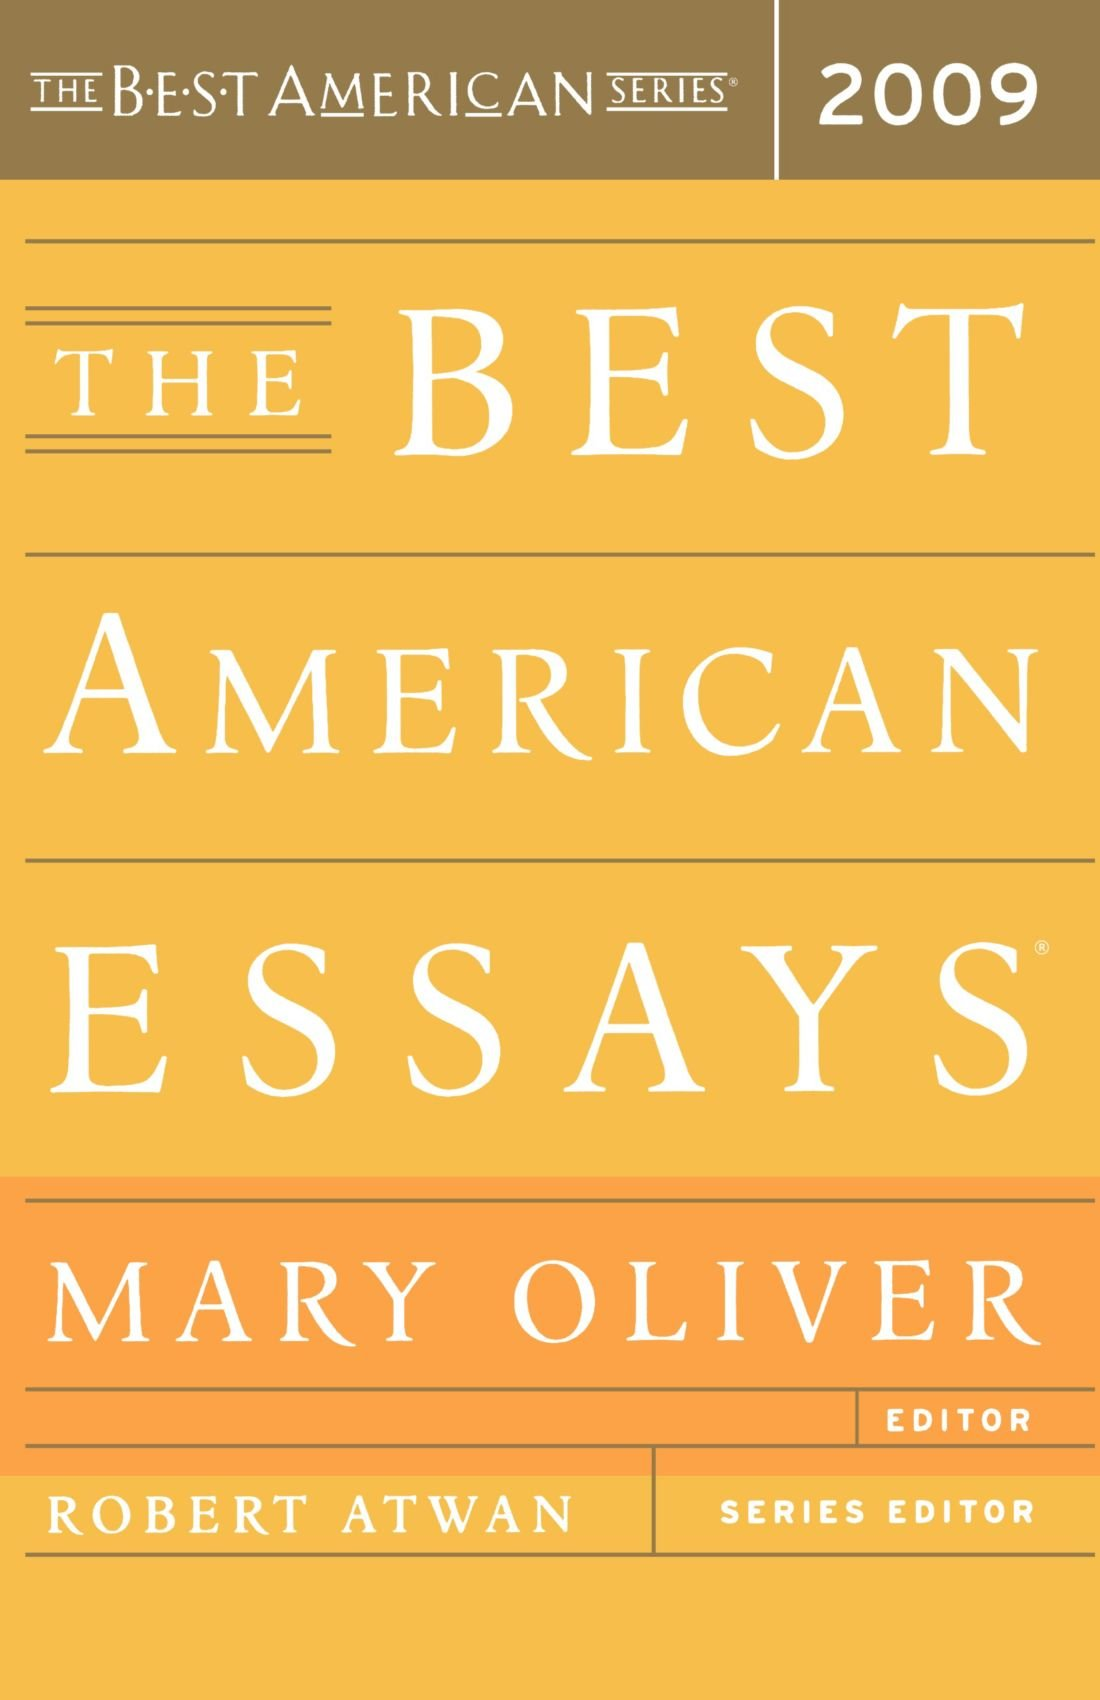 009 617qb5slhfl Essay Example Best American Striking Essays 2017 Pdf Submissions 2019 Of The Century Table Contents Full